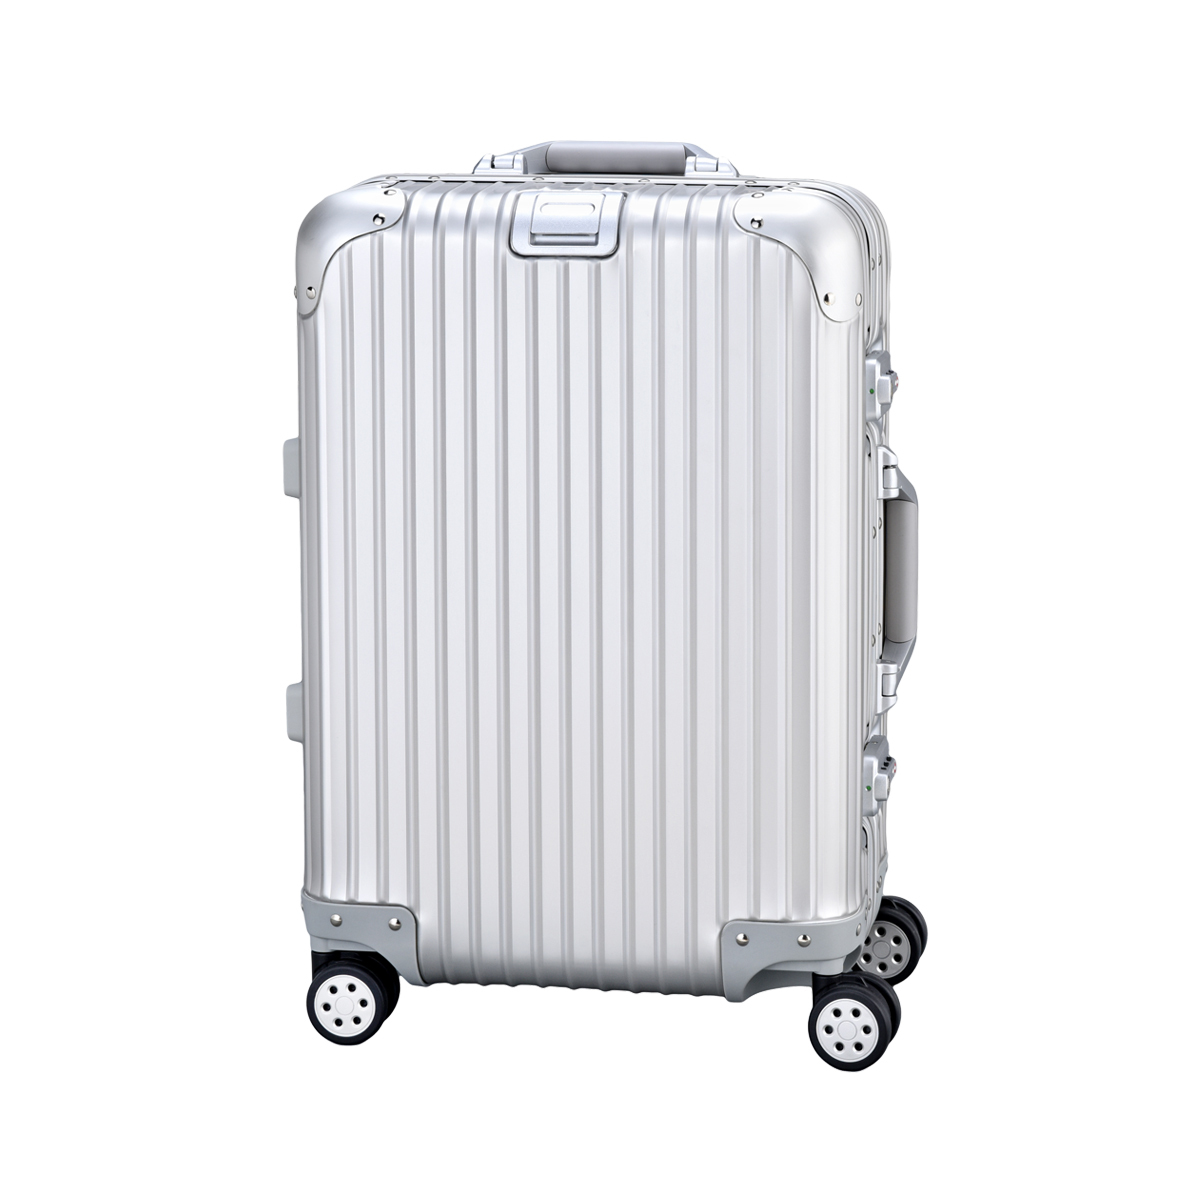 Aluminium Alloy Frame Luggage